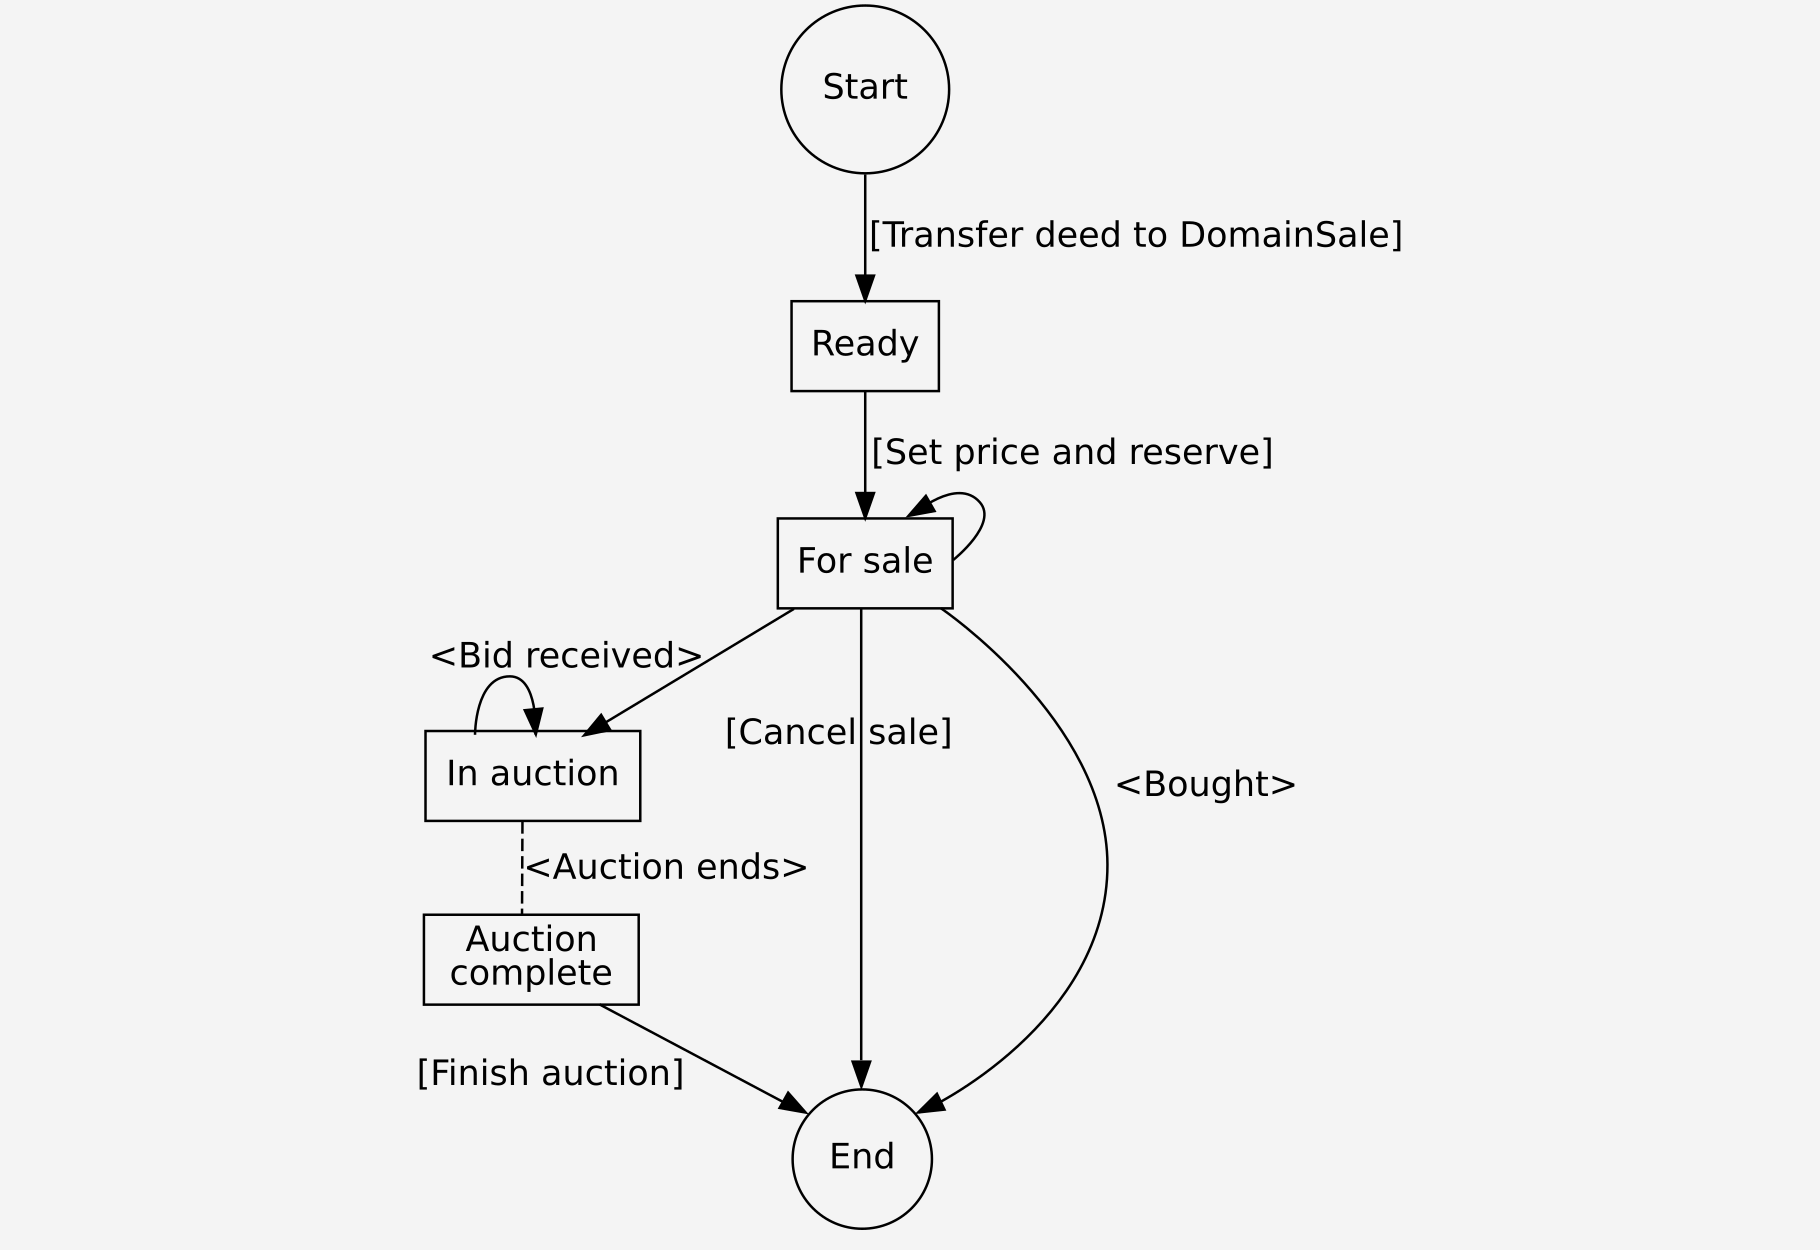 DomainSale process for sellers. Actions carried out by the seller are wrapped in square brackets. Actions carried out by other entities are wrapped in angular brackets